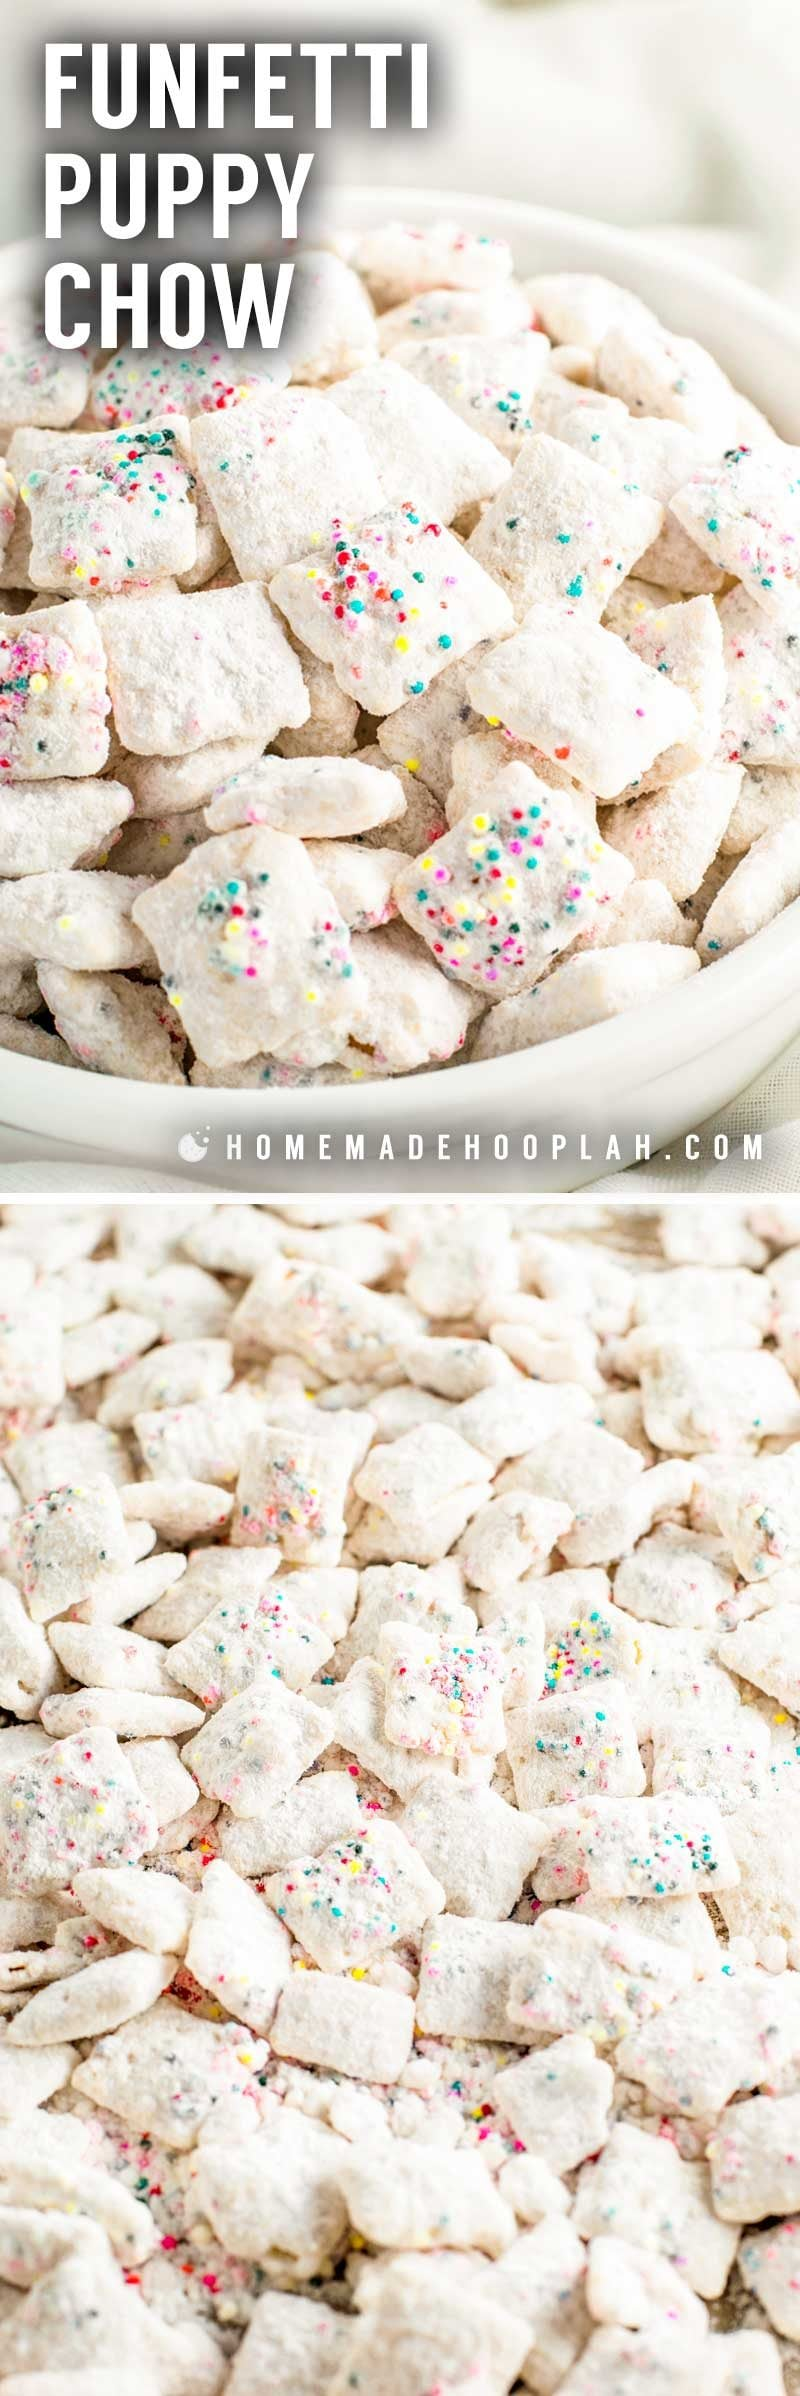 Funfetti puppy chow with white chocolate